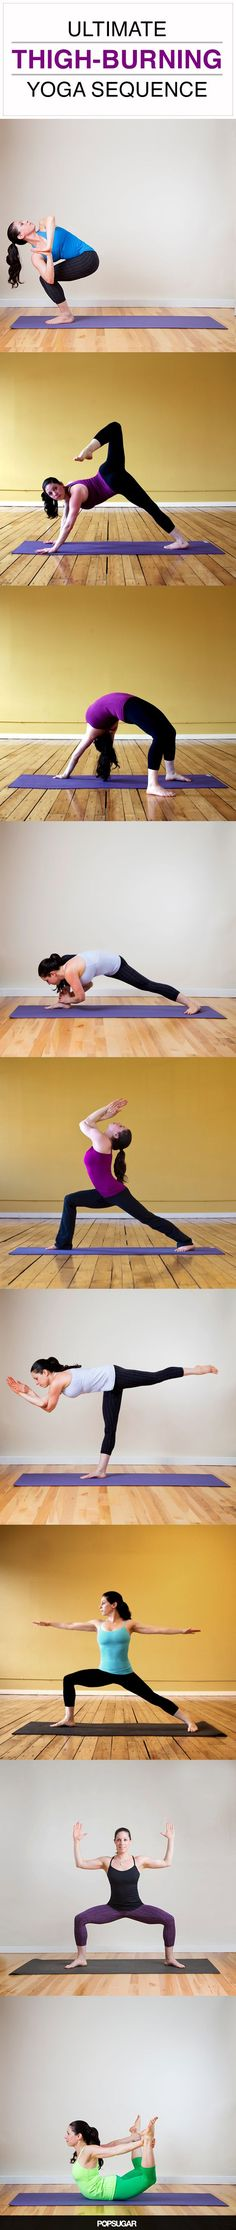 Yoga useful for improving balance in stroke victims